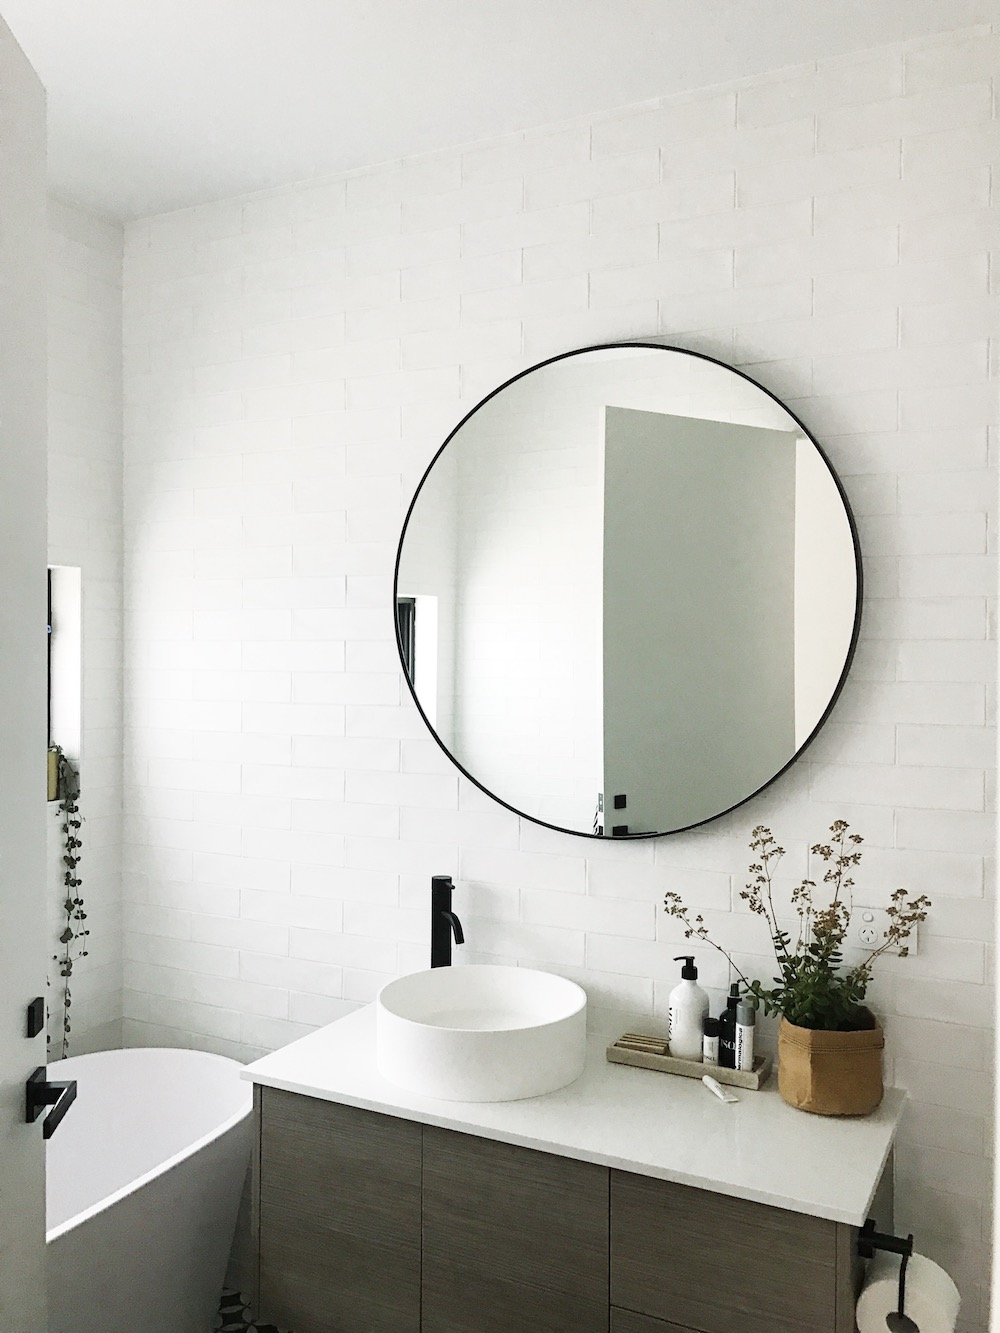 Gina\'s home: Black and white bathroom reveal - STYLE CURATOR